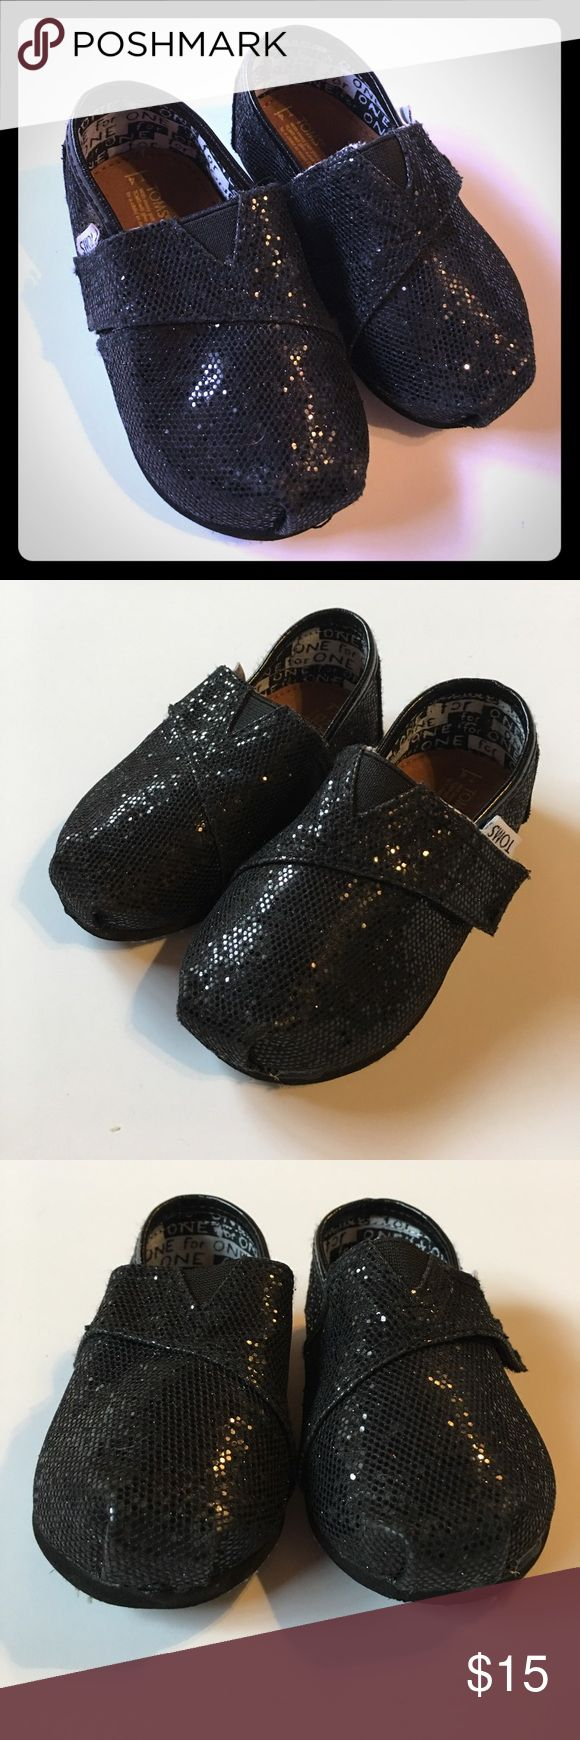 Black Glitter Tiny Toms - size T4 Black glitter Tiny Toms size 4. In great shape! TOMS Shoes